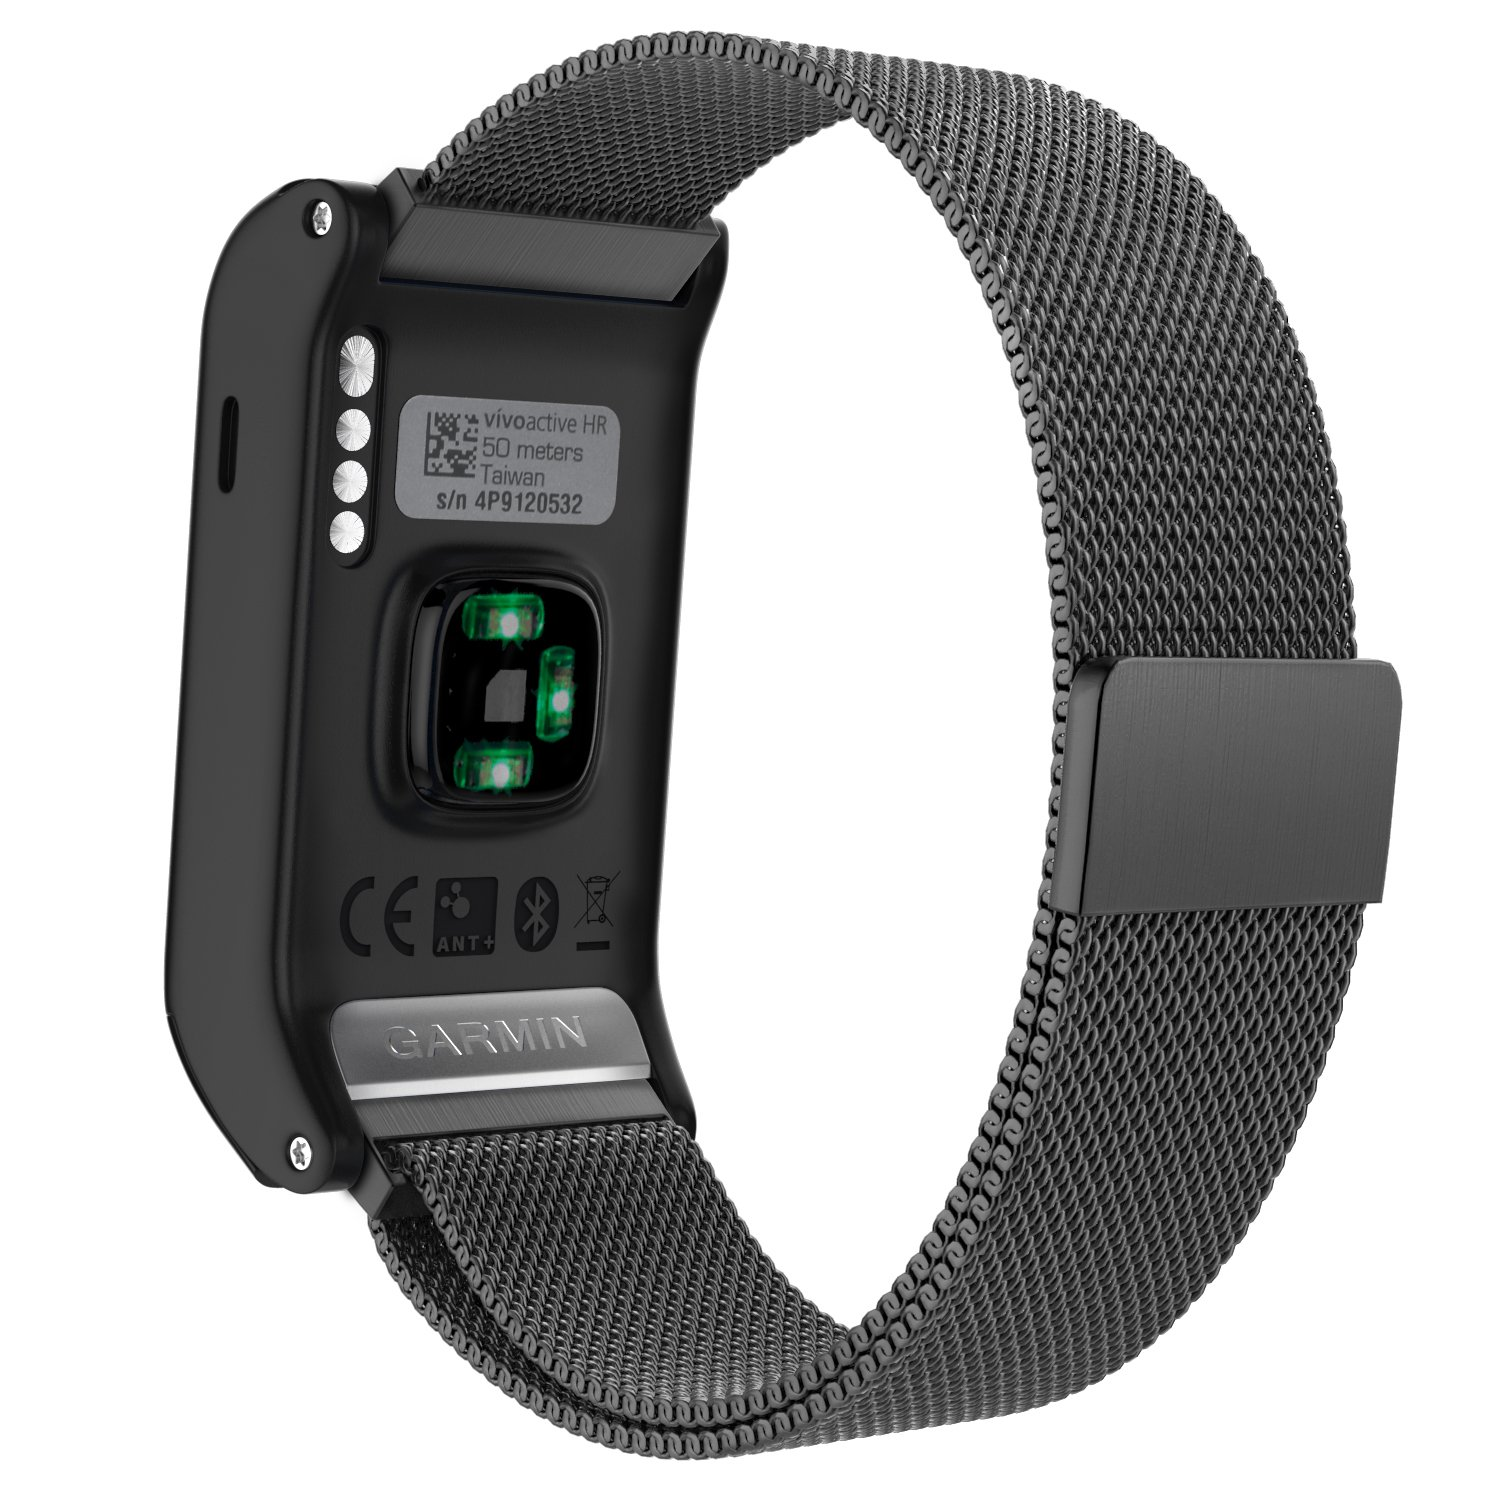 Garmin Vivoactive HR Watch Band, MoKo Milanese Loop Stainless Steel Mesh Replacement Bracelet Strap for Vivoactive HR Sports GPS Smart Watch with Unique Magnet Lock, No Buckle Needed, Black